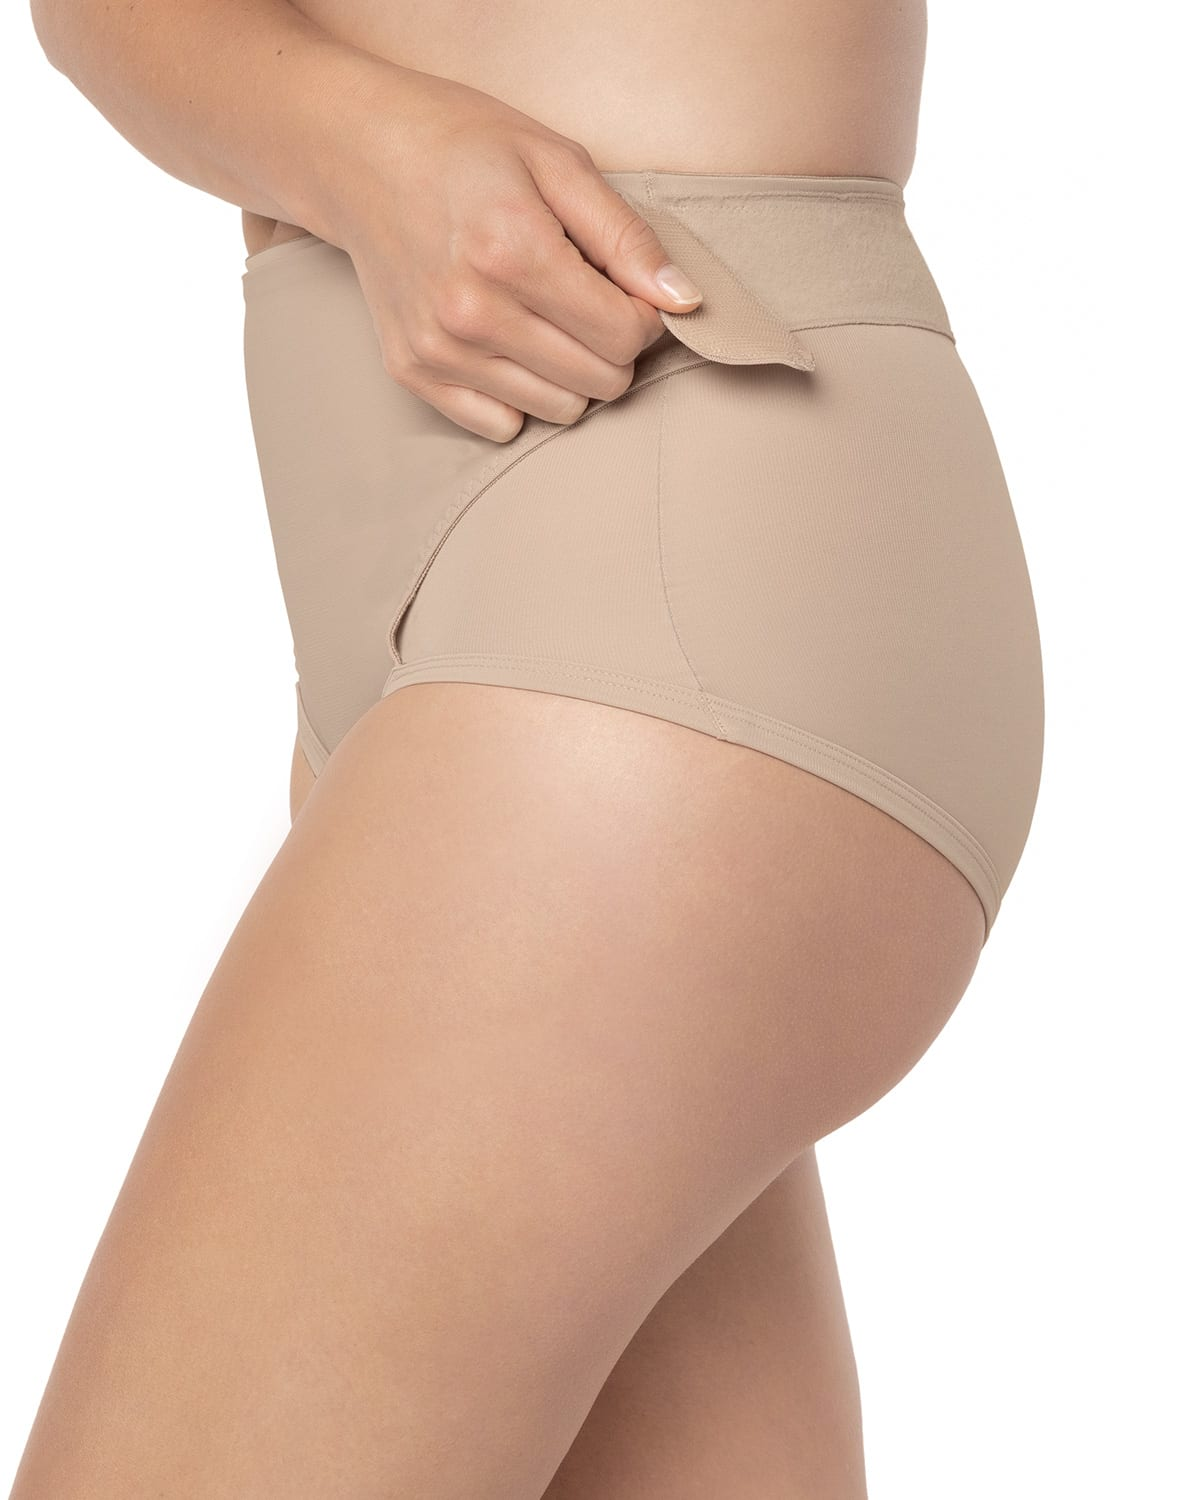 3c40321781b7 Firm Compression Postpartum Panty with Adjustable Belly Wrap | Leonisa